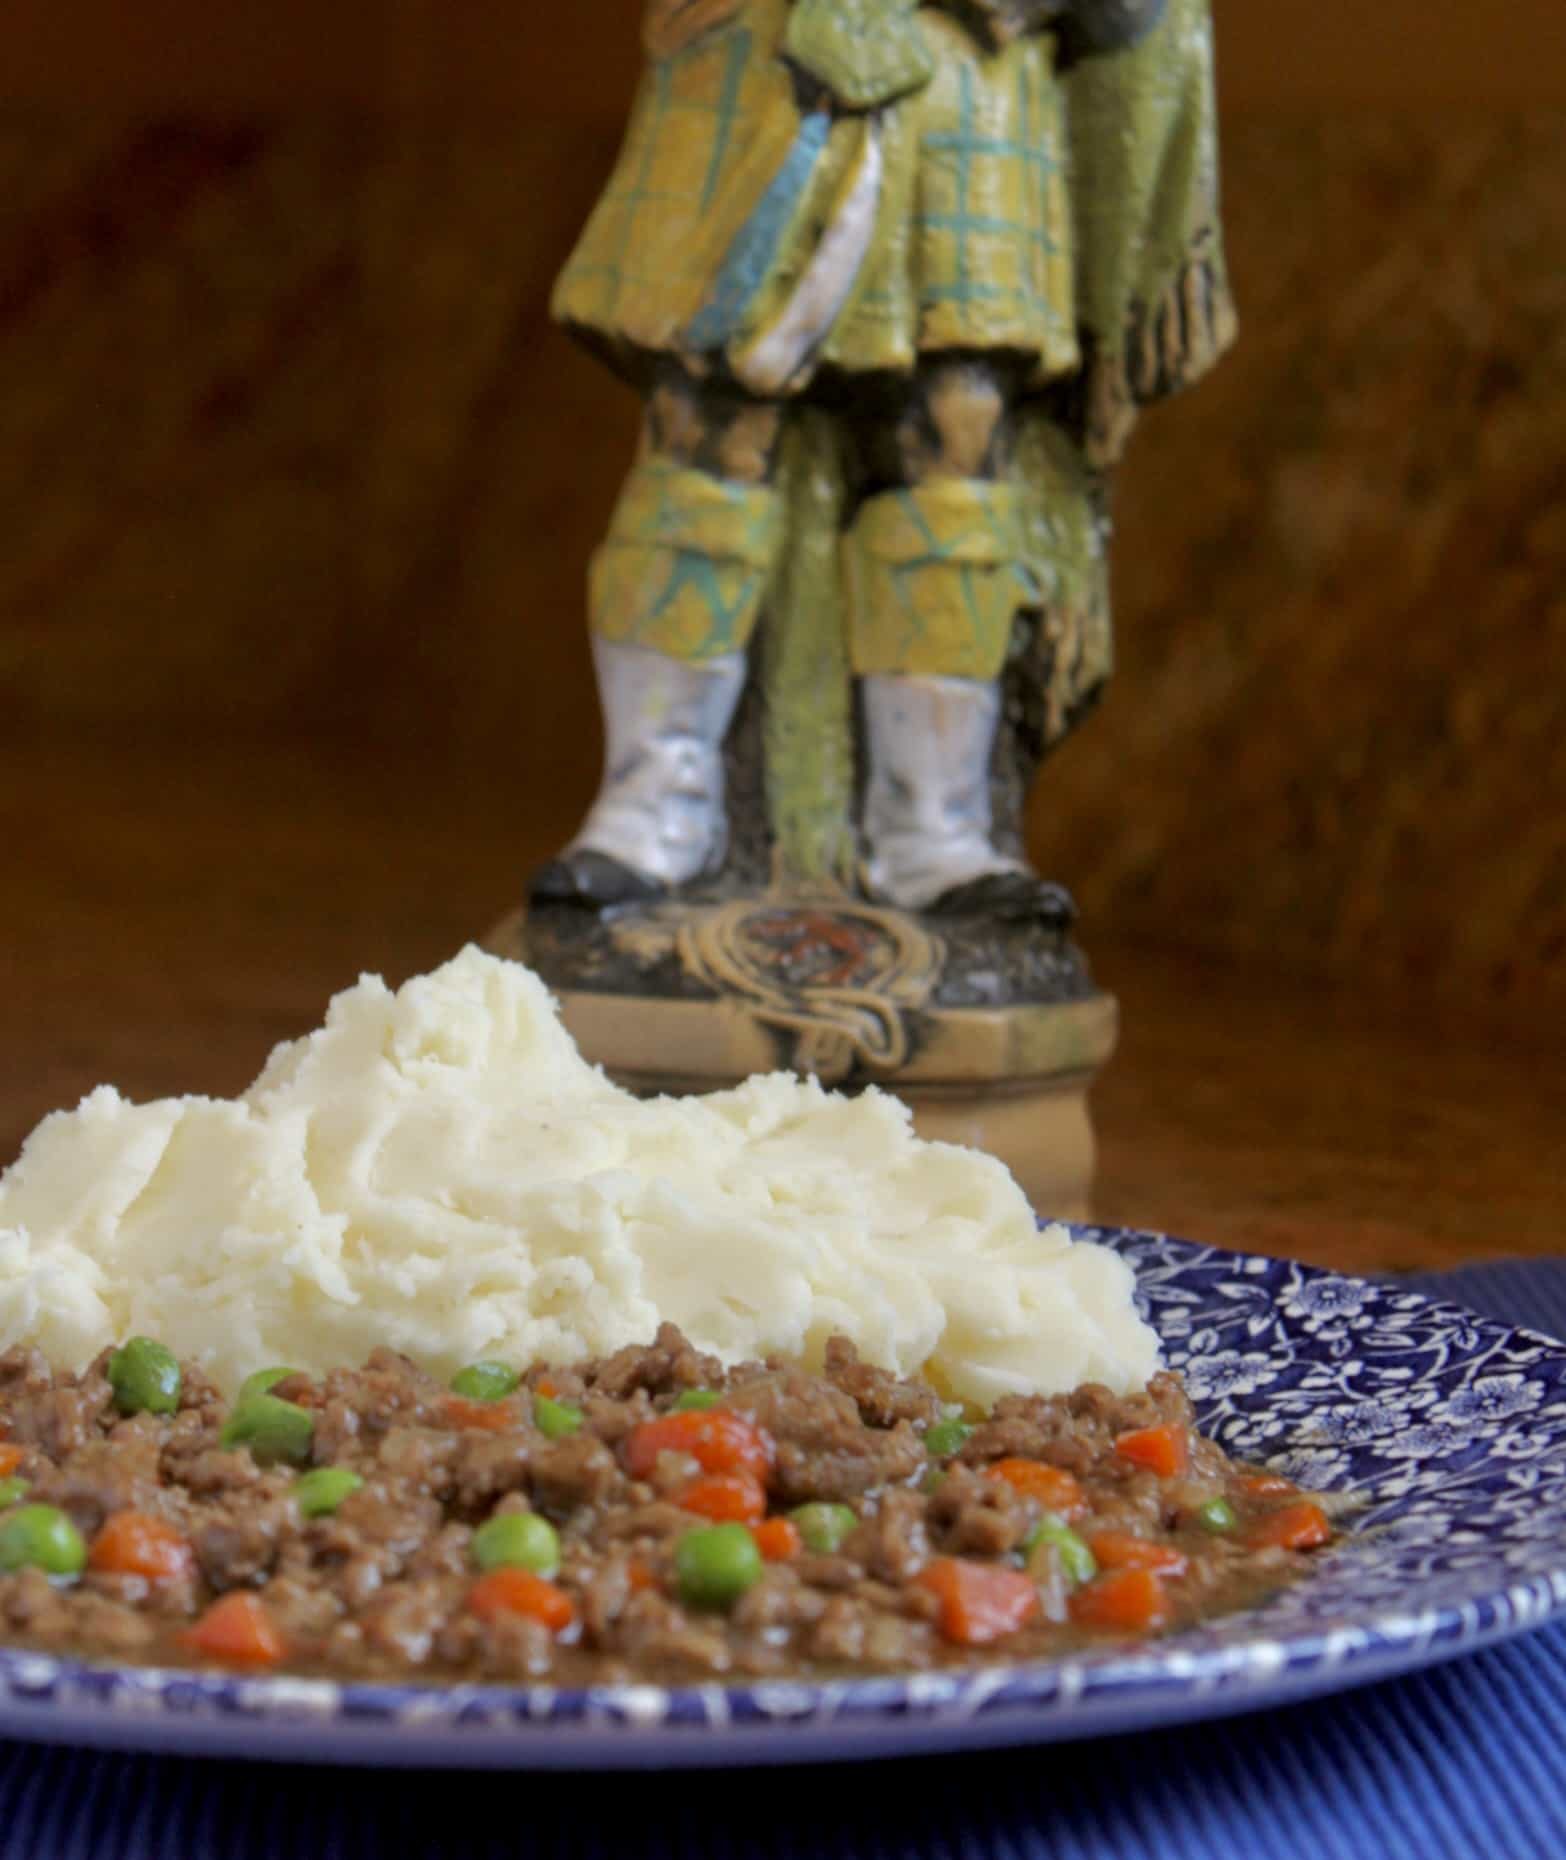 ground beef and mashed potatoes with peas